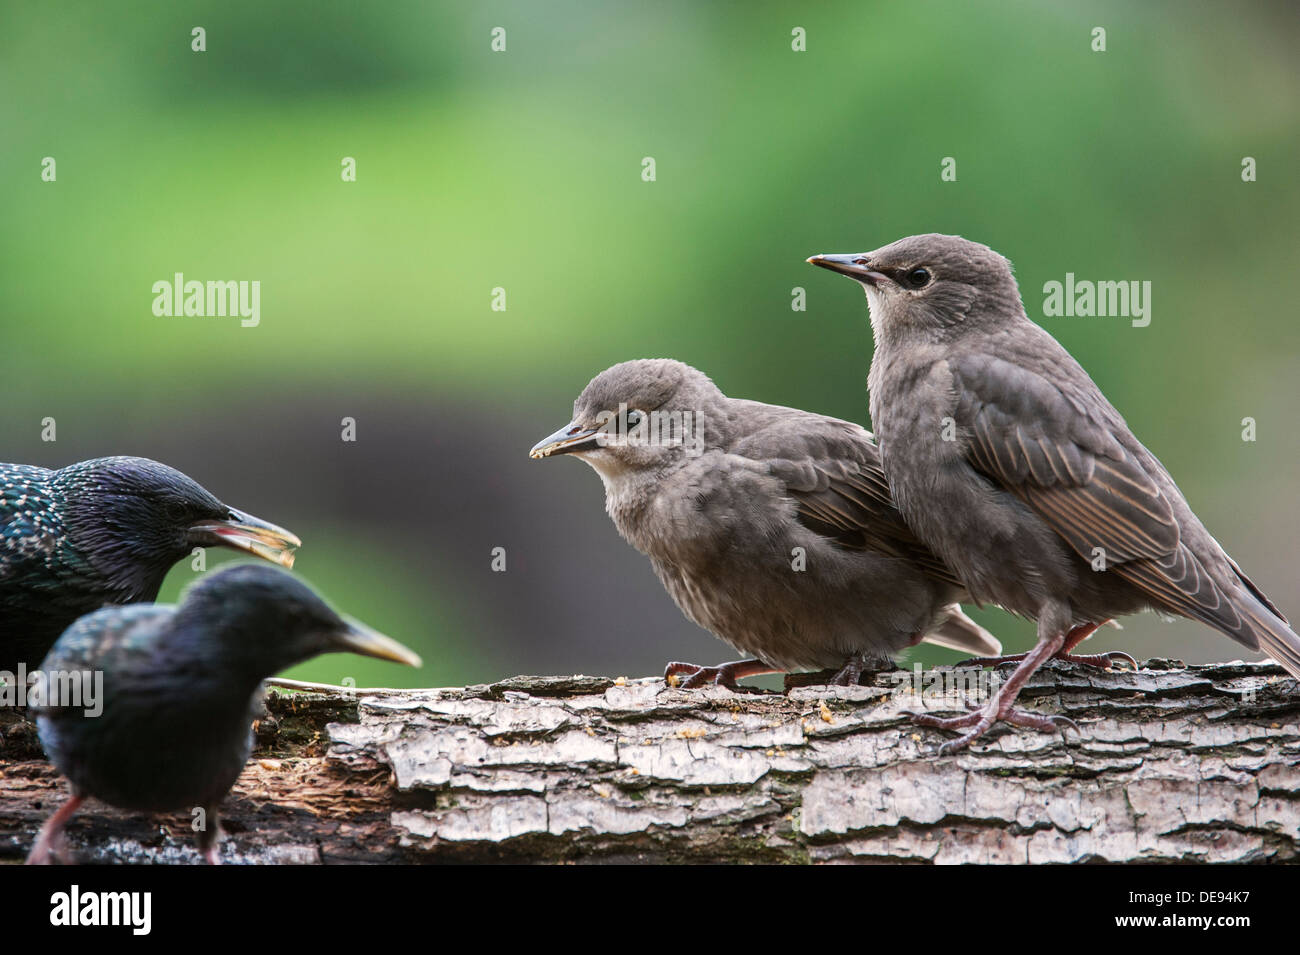 Two Common Starling / European starlings (Sturnus vulgaris) fledglings begging adult birds for food in spring - Stock Image